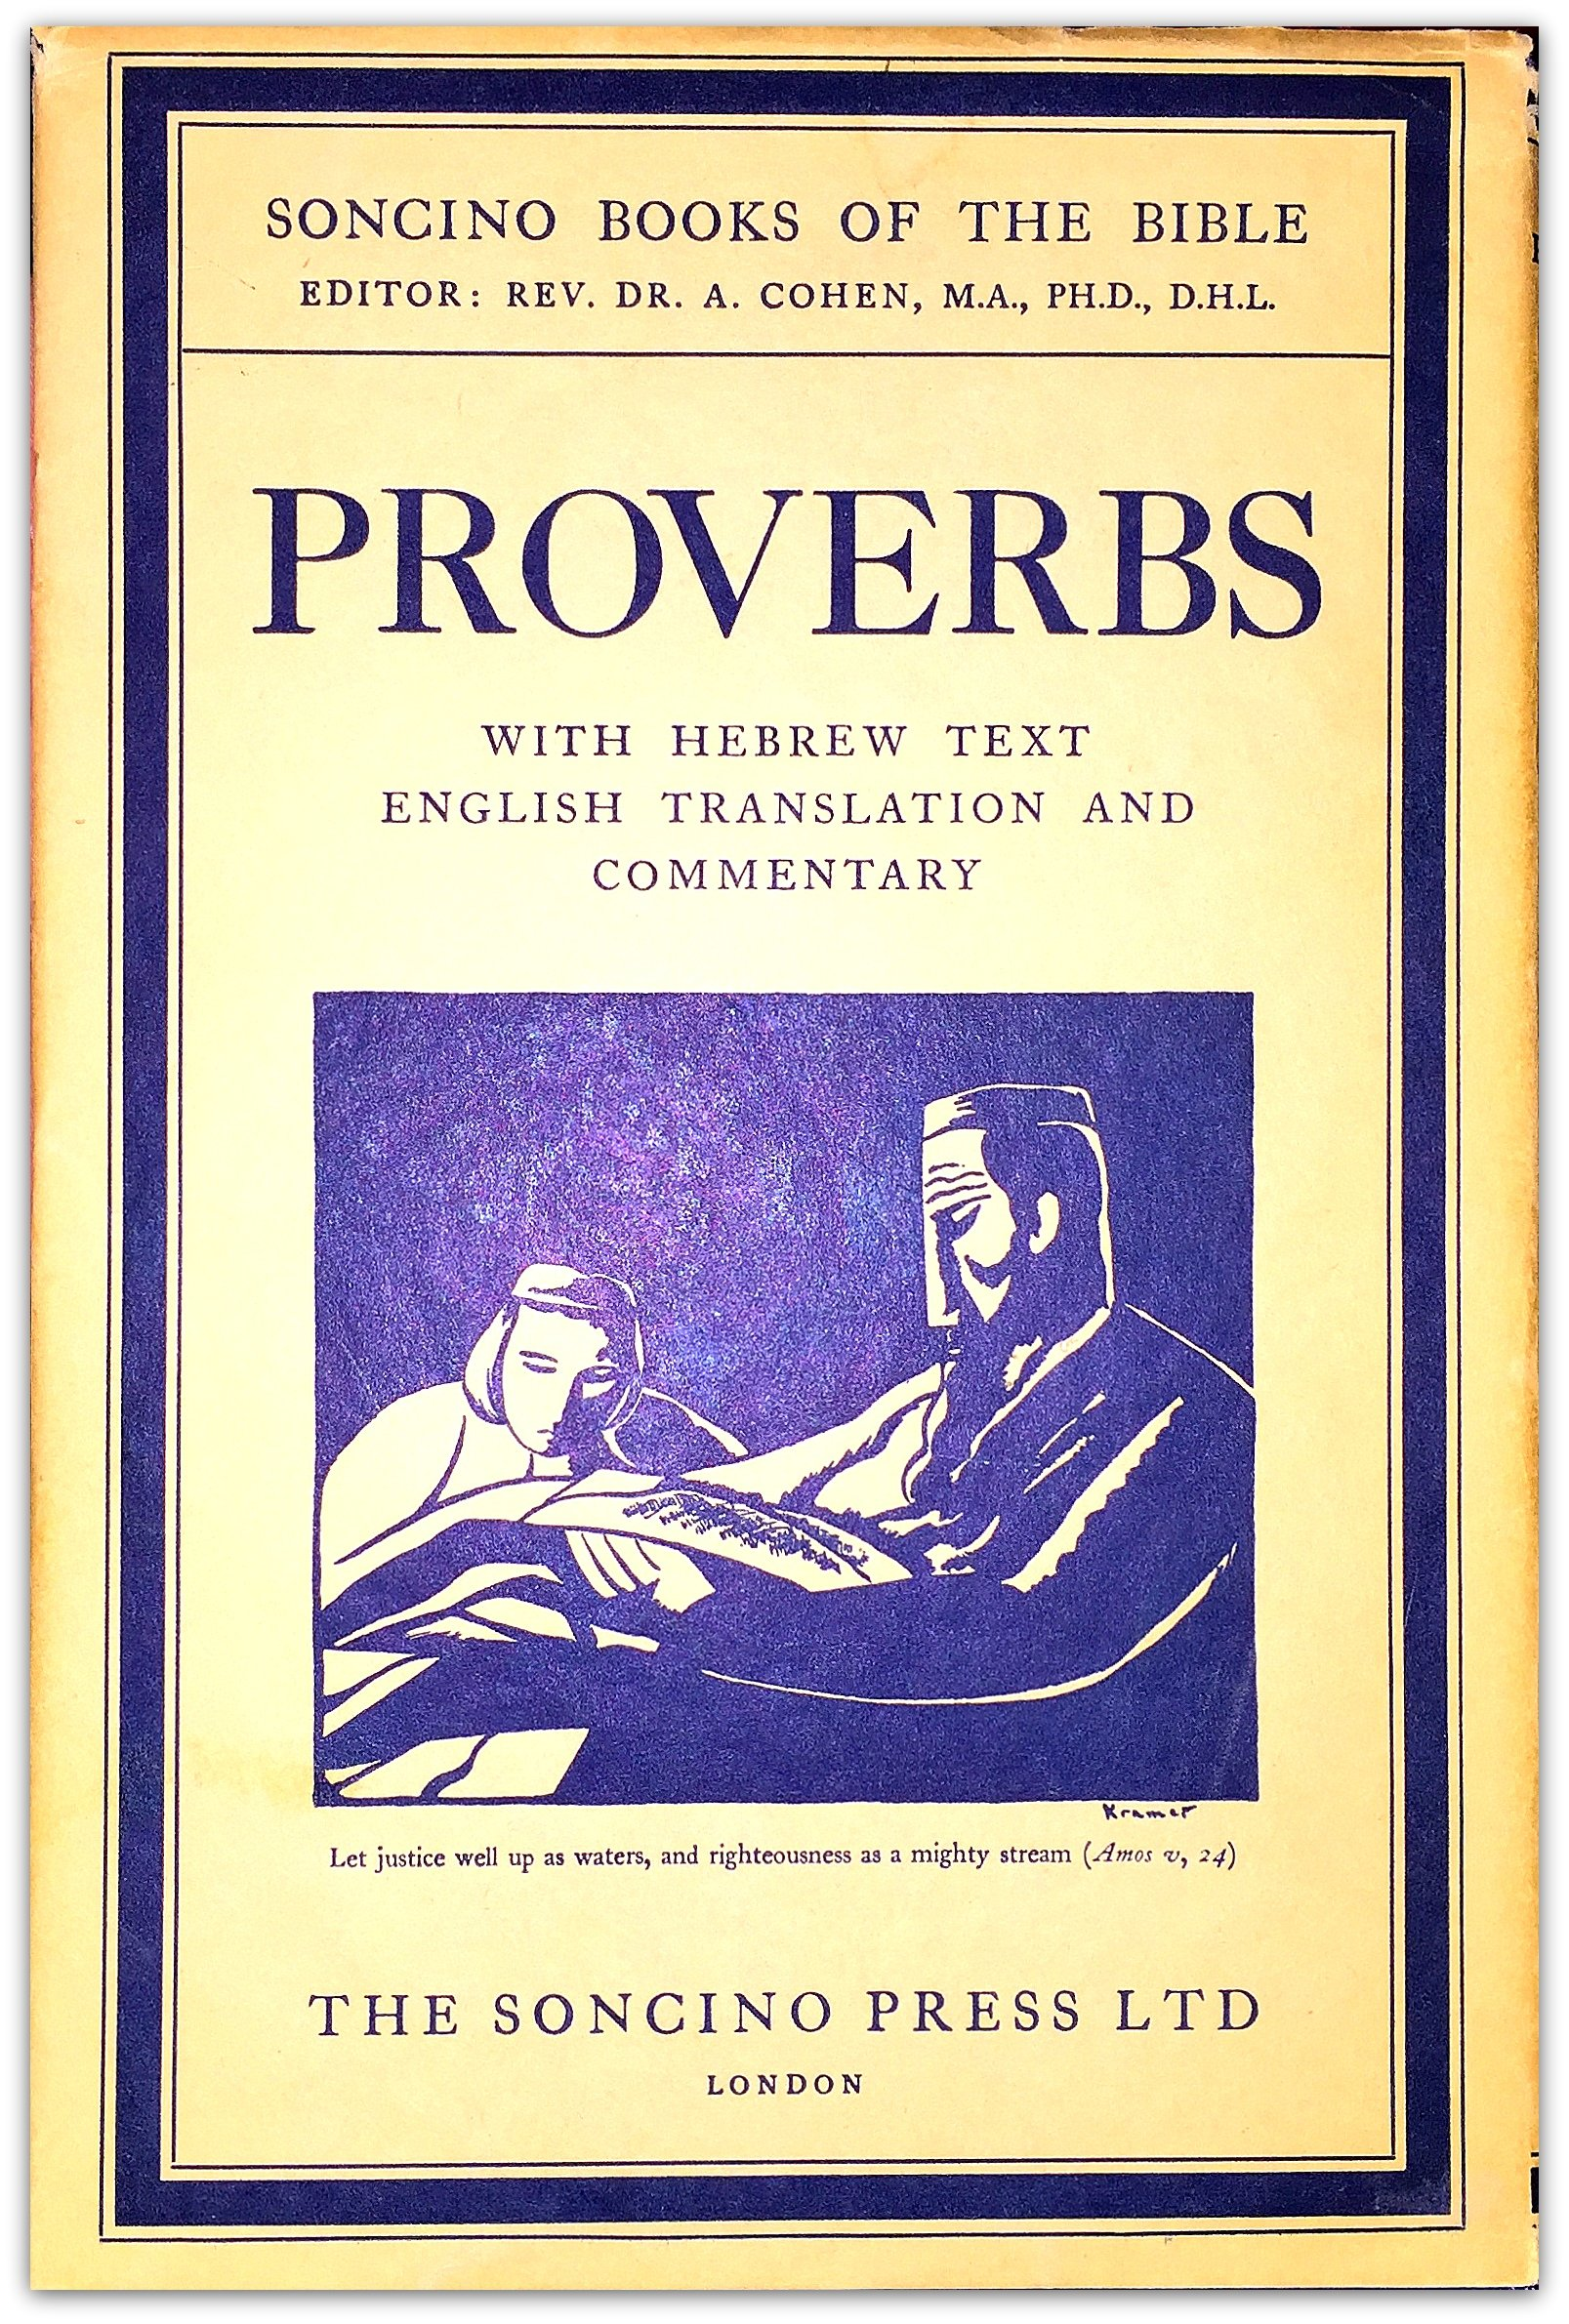 Proverbs, The Soncino Books of the Bible  Hebrew Text and English